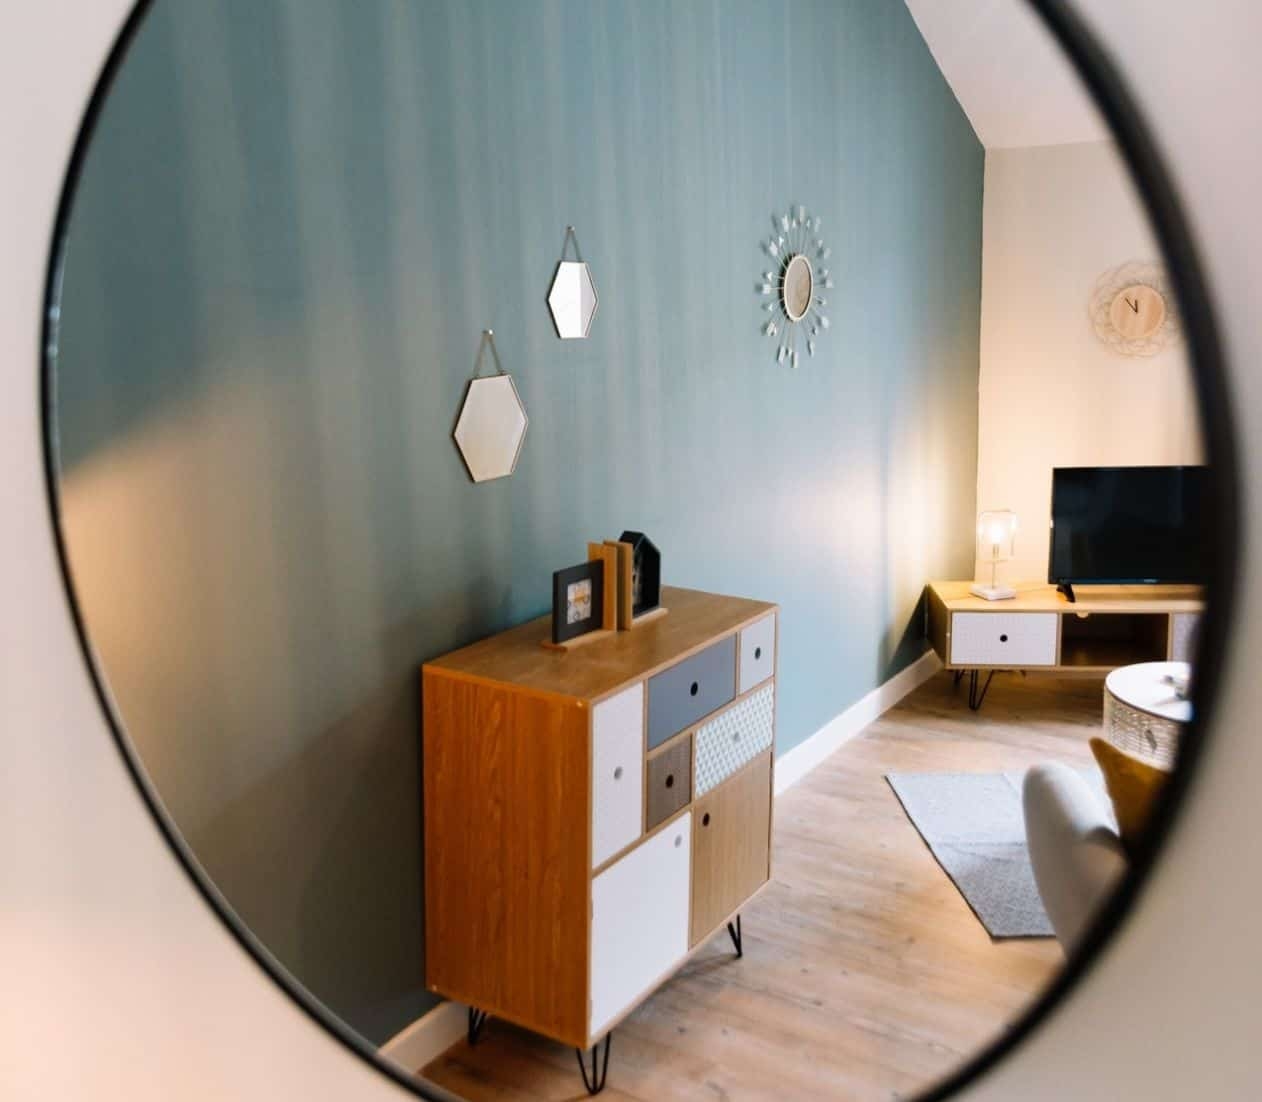 11-easy-effective-ways-maximise-space-home-office-9-use-the-mirror-illusion-